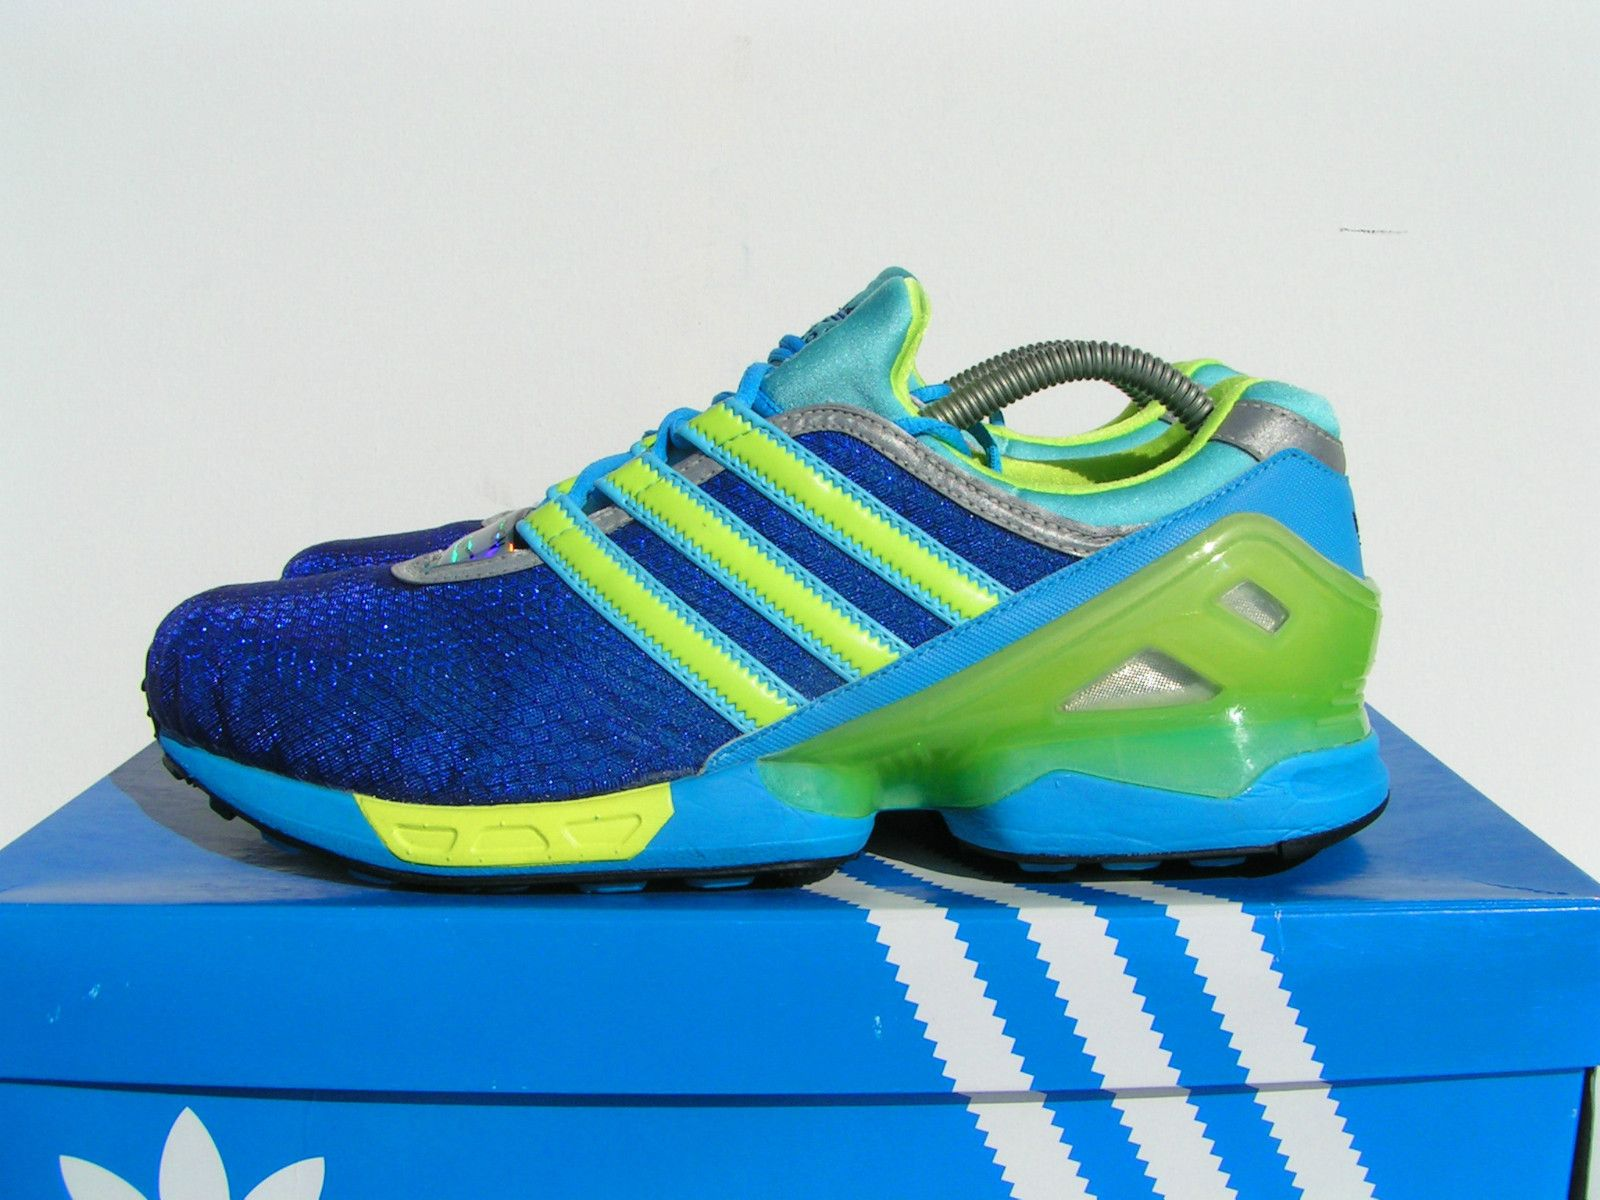 109605fa0 Adidas ZX Marathon Gr. 42 8000 Equipment Torsion Support 8000 Cushion  Micropacer